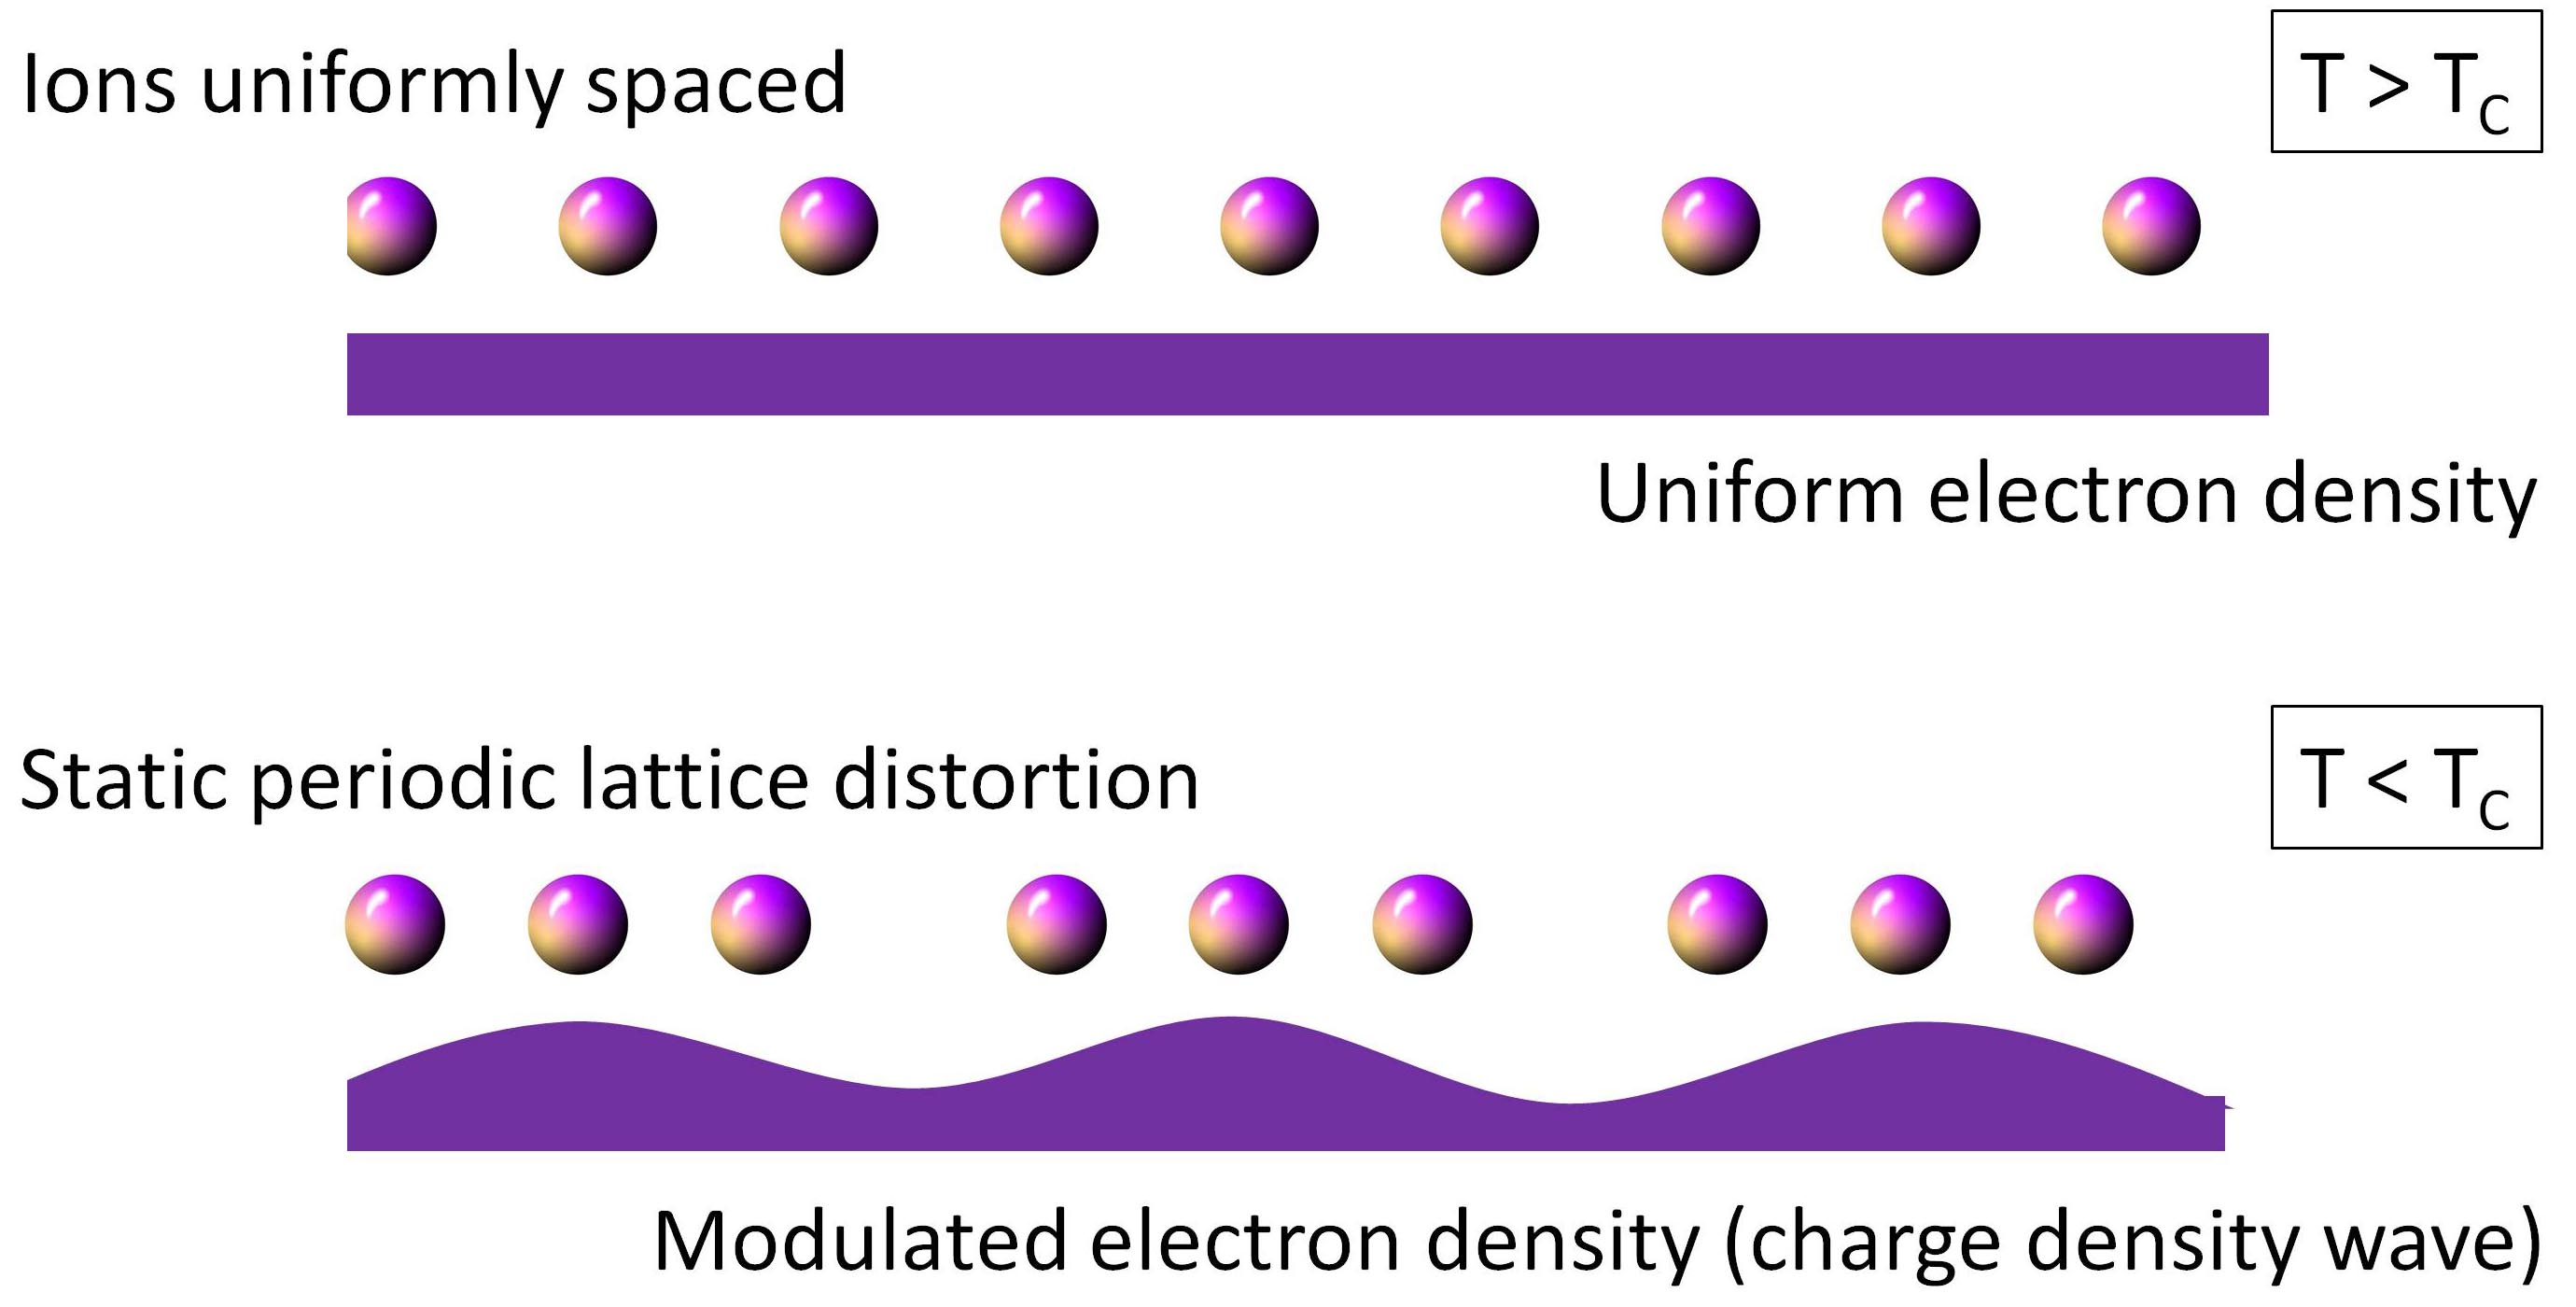 Charge density wave